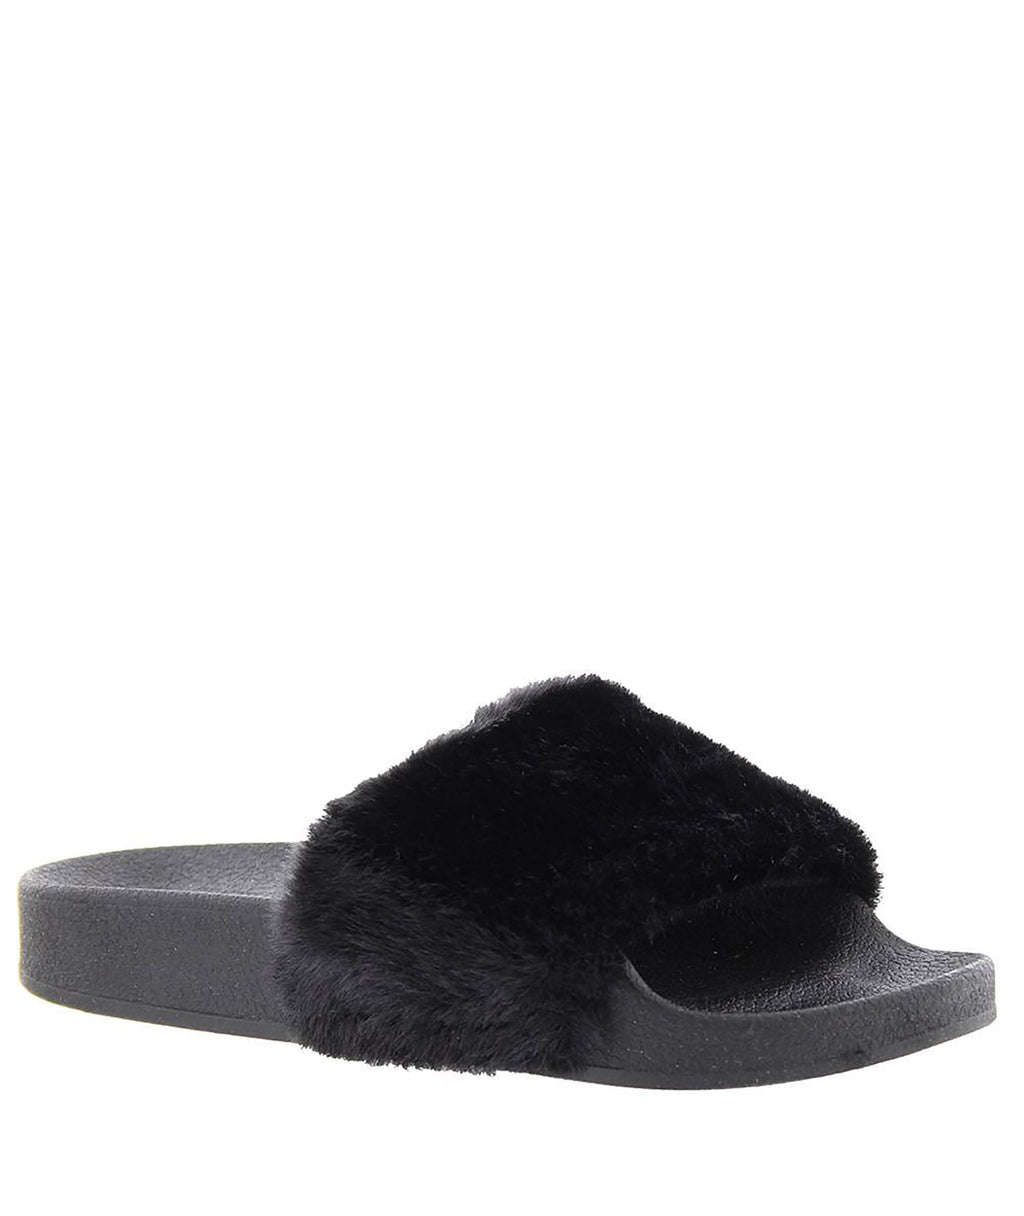 Steve Madden Black Fur Slides - Frankie's on the Park